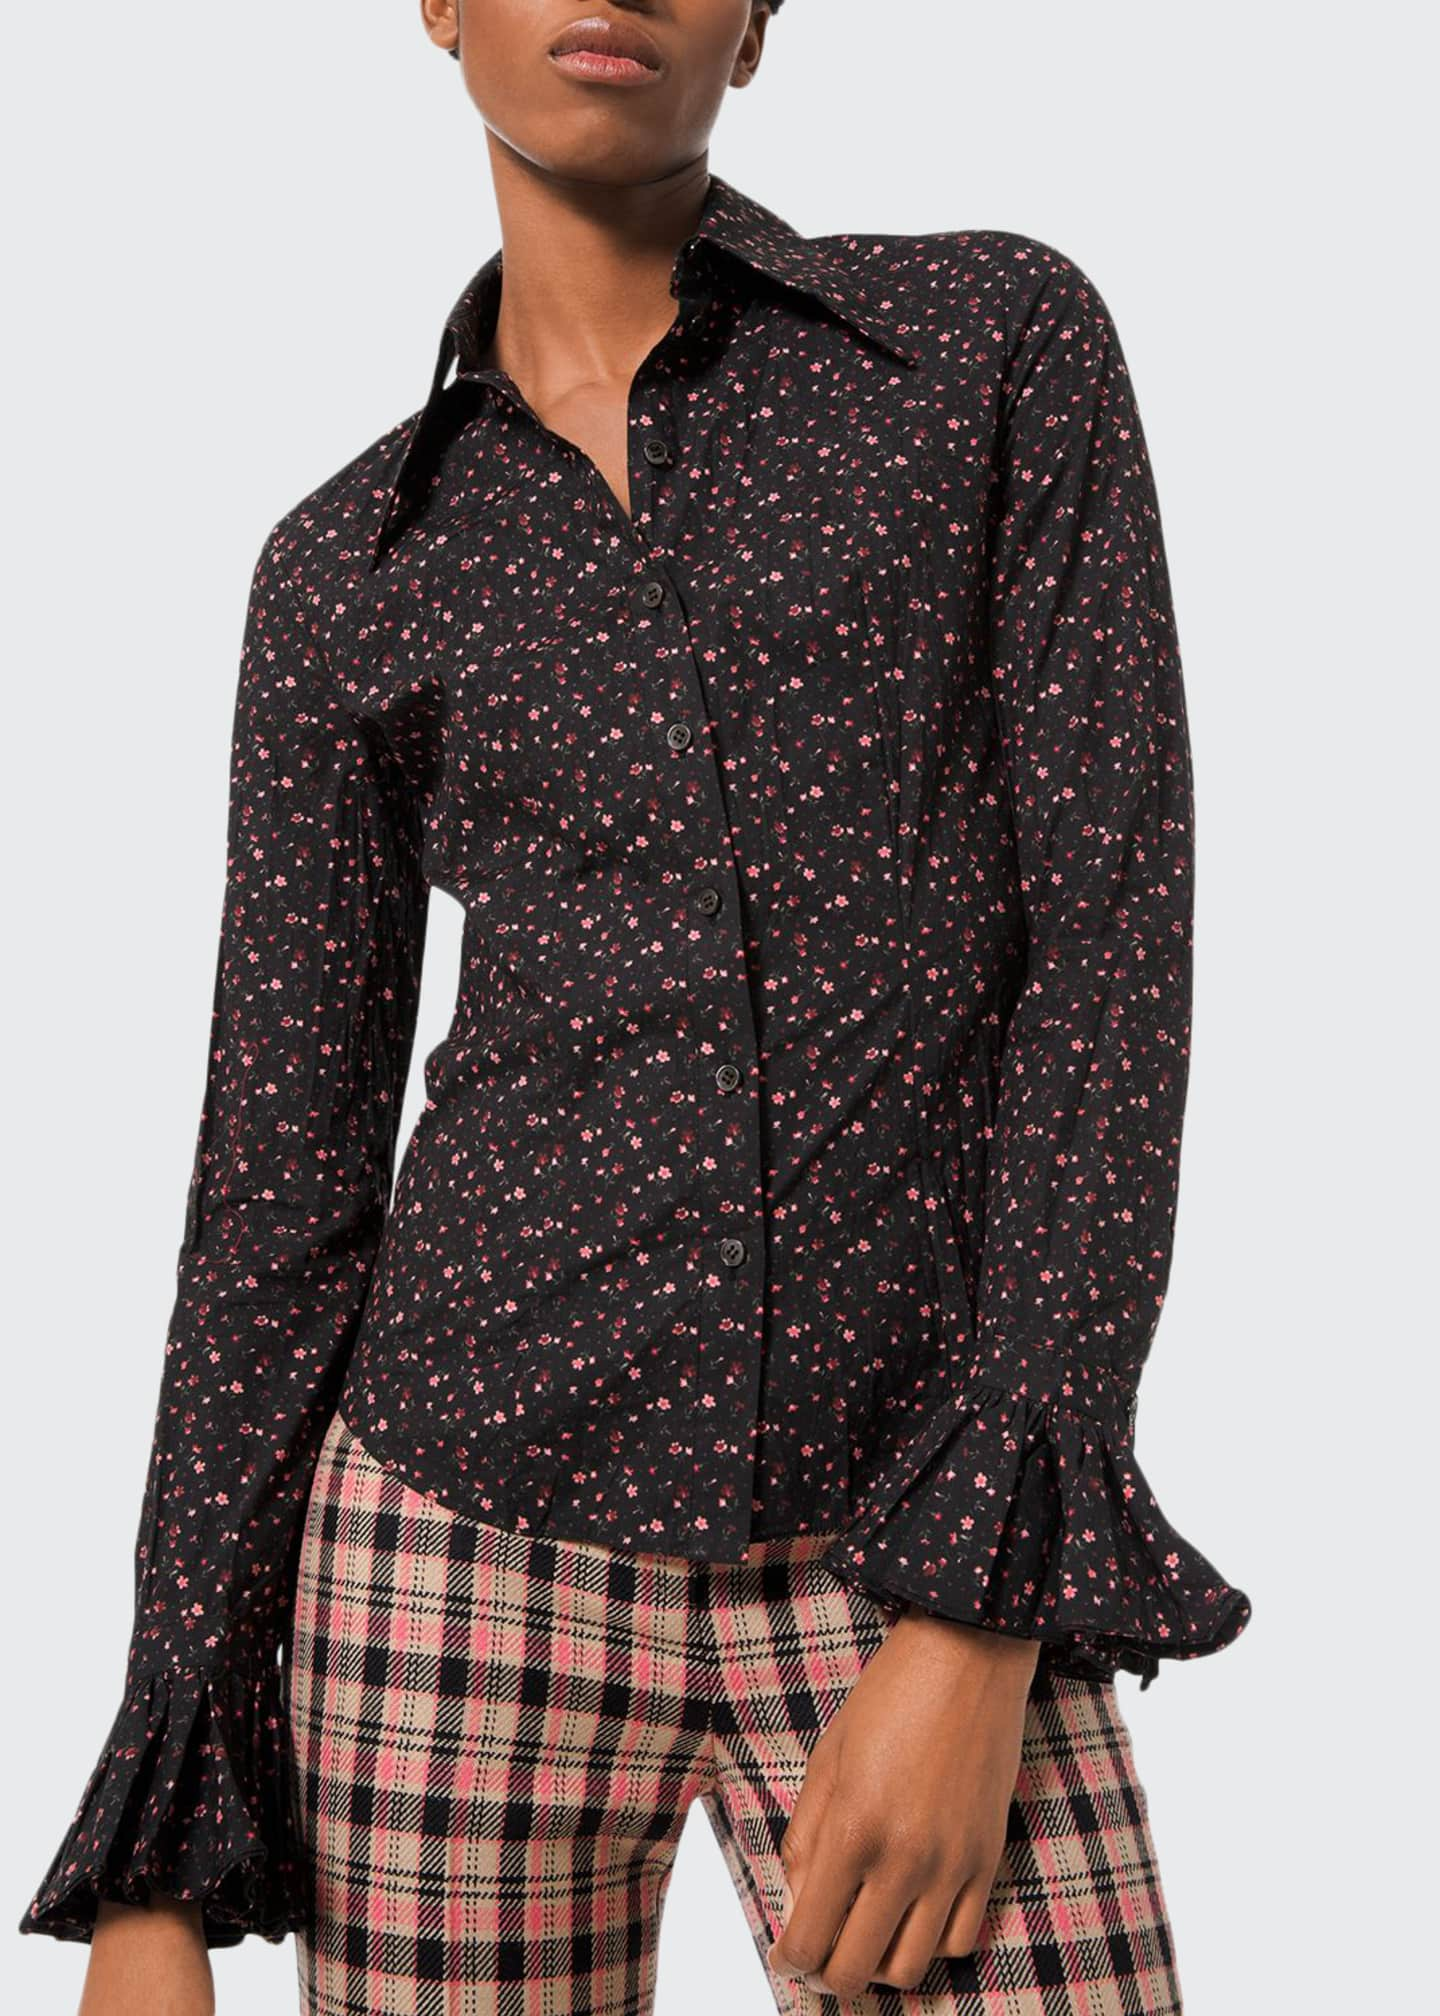 Michael Kors Collection Floral-Print Crushed Bell-Sleeve Shirt,